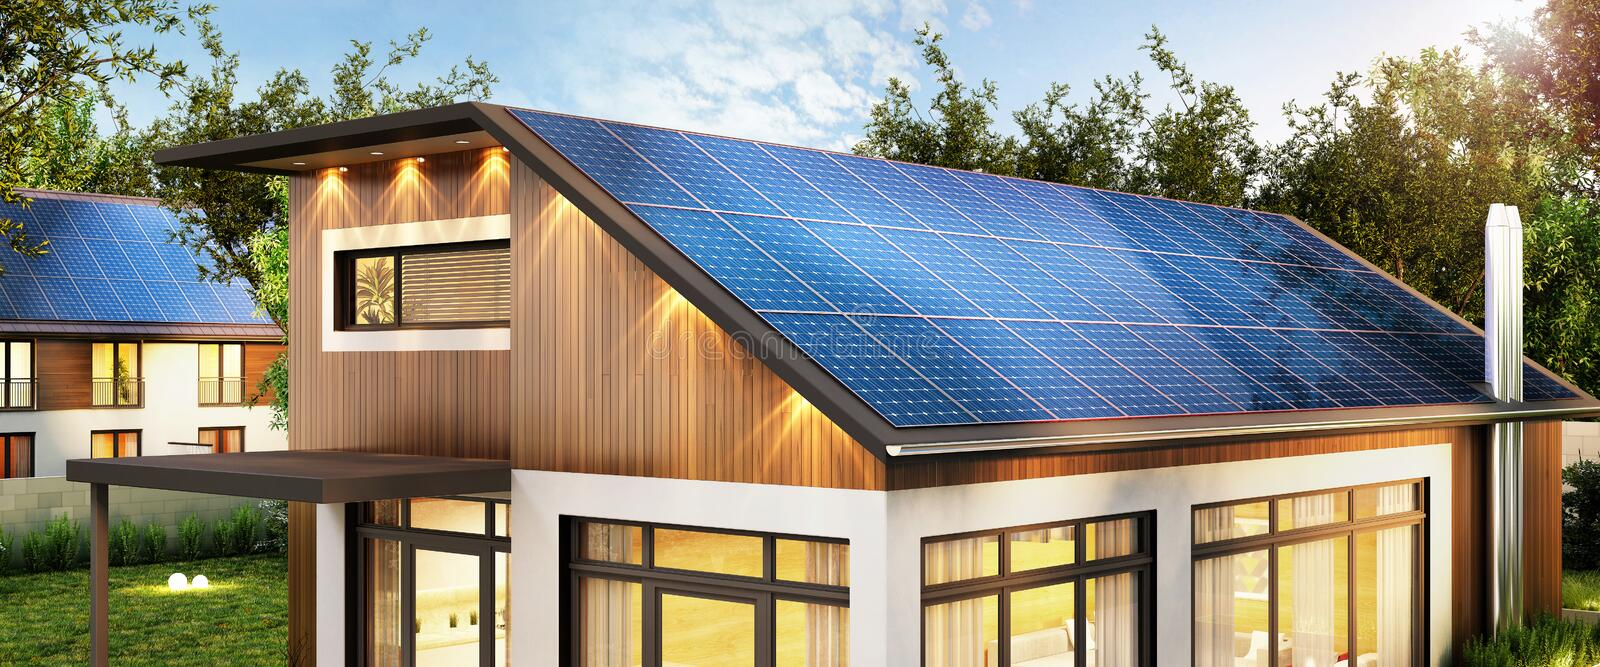 Modern house with solar panels on the roof. Large modern house with solar panels on the roof royalty free illustration